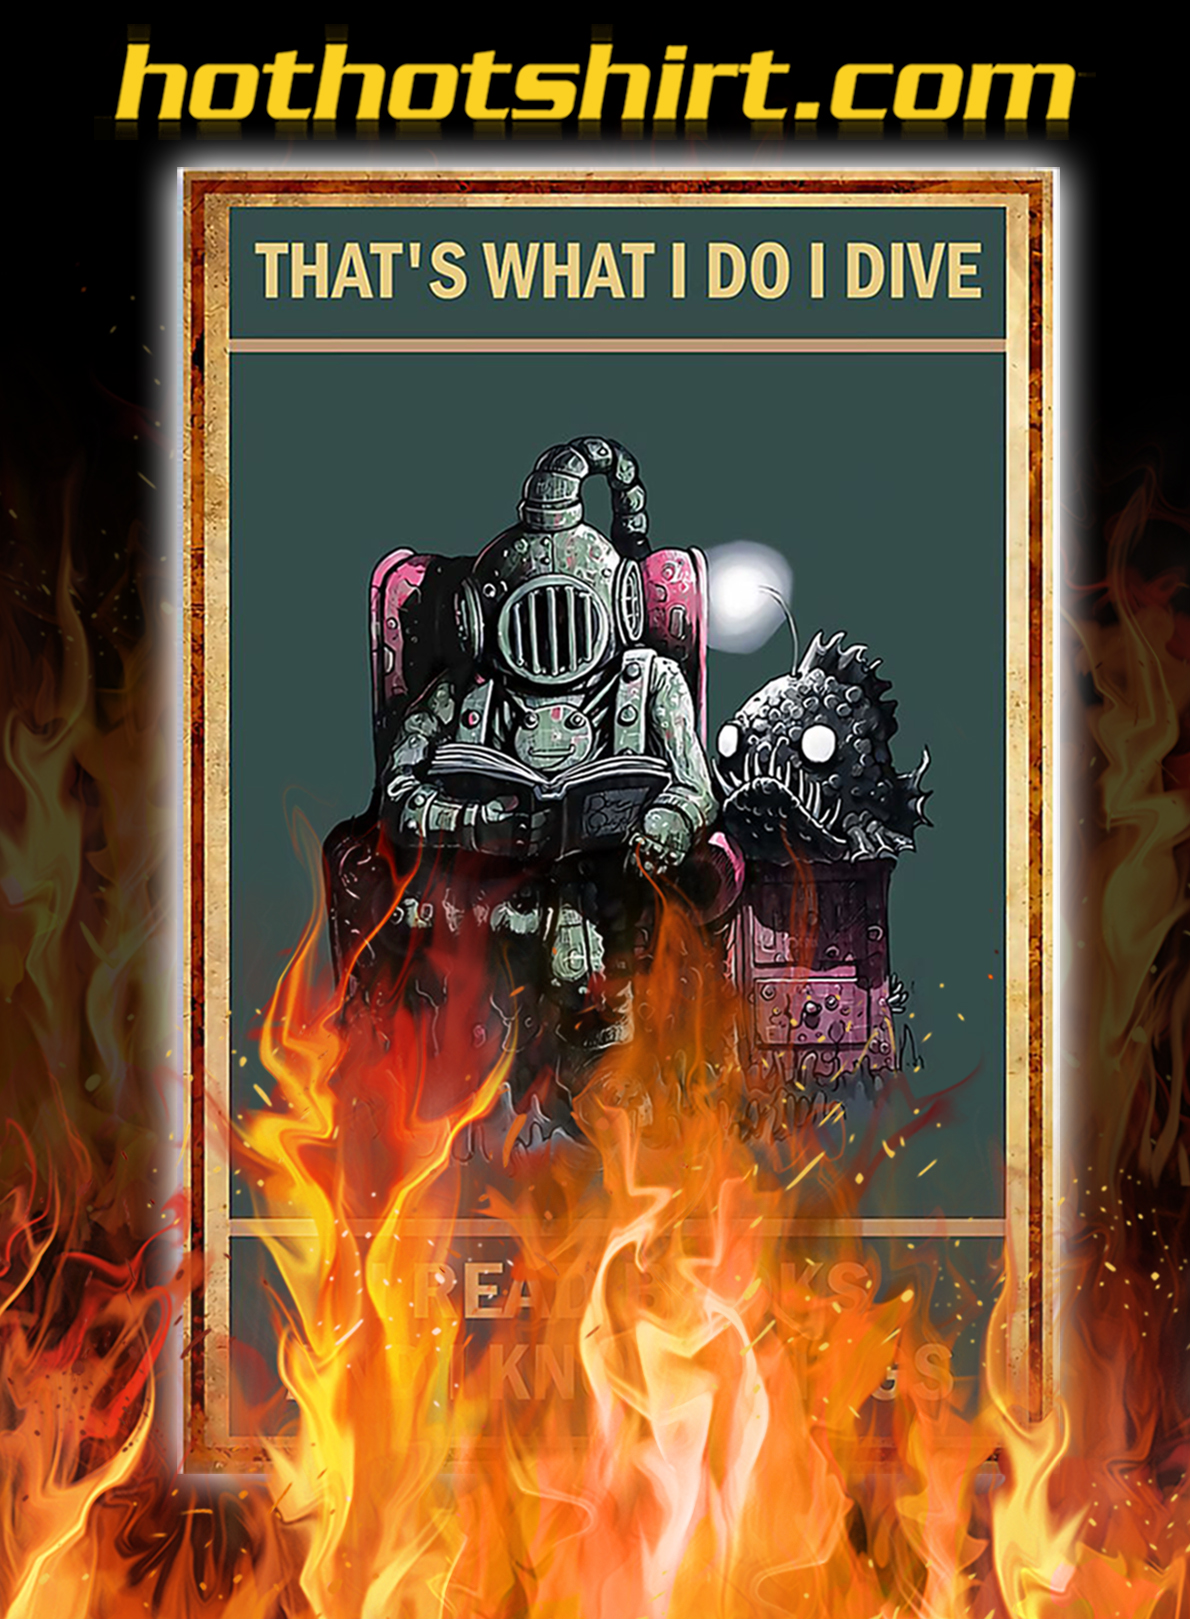 Scuba diving that's what i do i dive i read books and i know things poster - A2